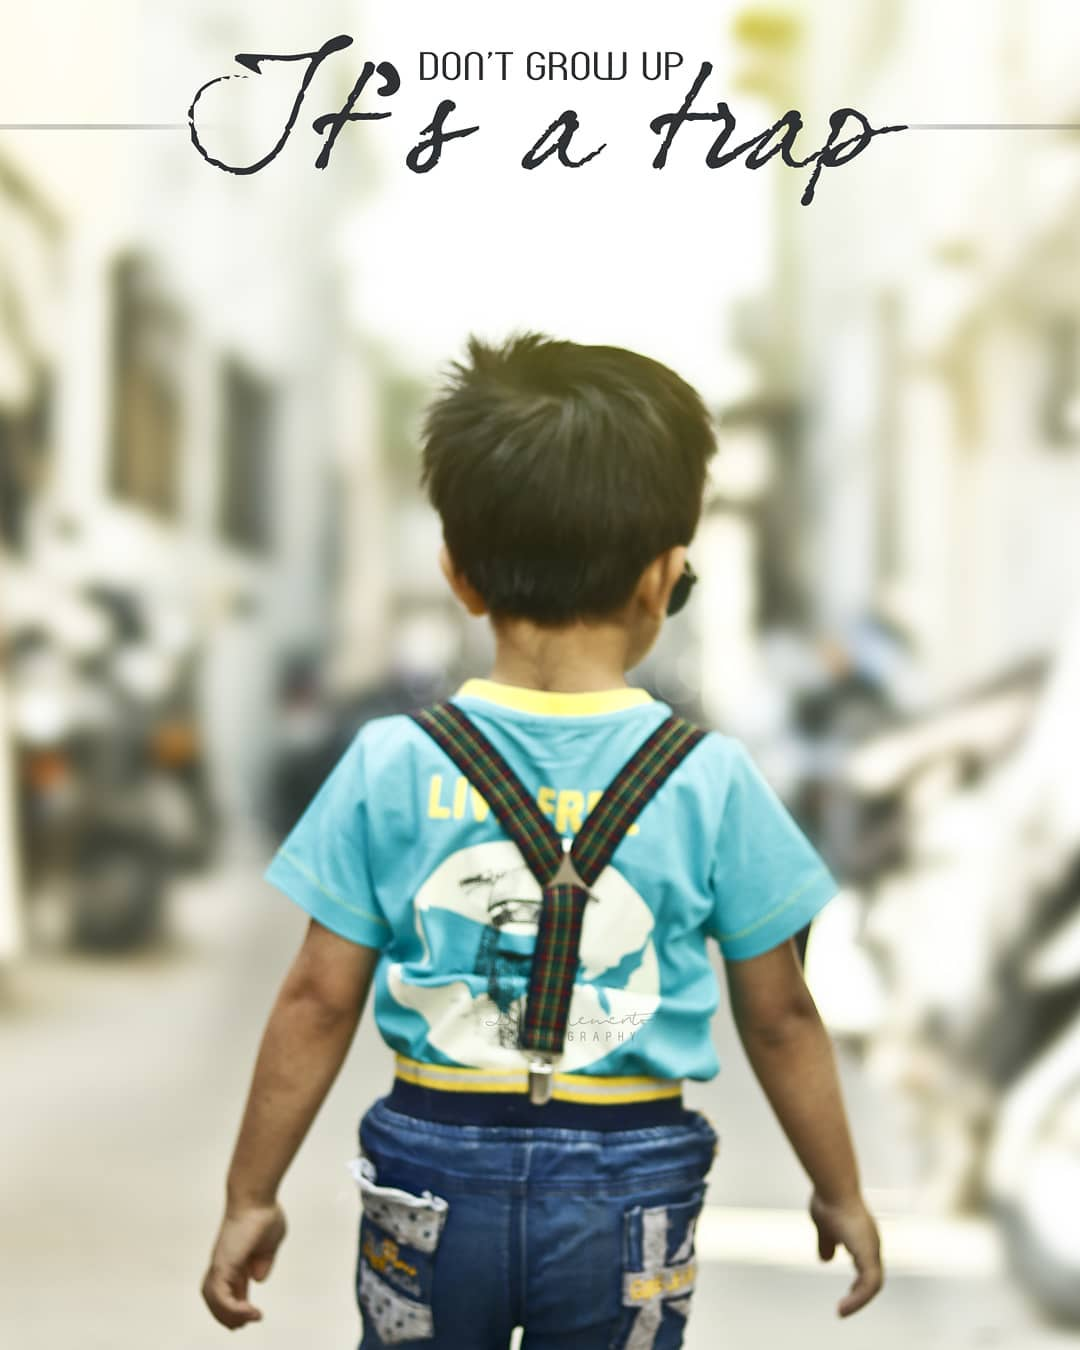 Don't grow up, its a TRAP. 😁😁😁😇 @prince.of.papa  #baby #babygoals #Childhood #Love #Adorable #Babygirl #Babyboy #Babylove #Kids #Cutebaby #Beautiful #Sweetbaby #innocentbaby #babystyle #uniquebaby #babiesglobe #Family